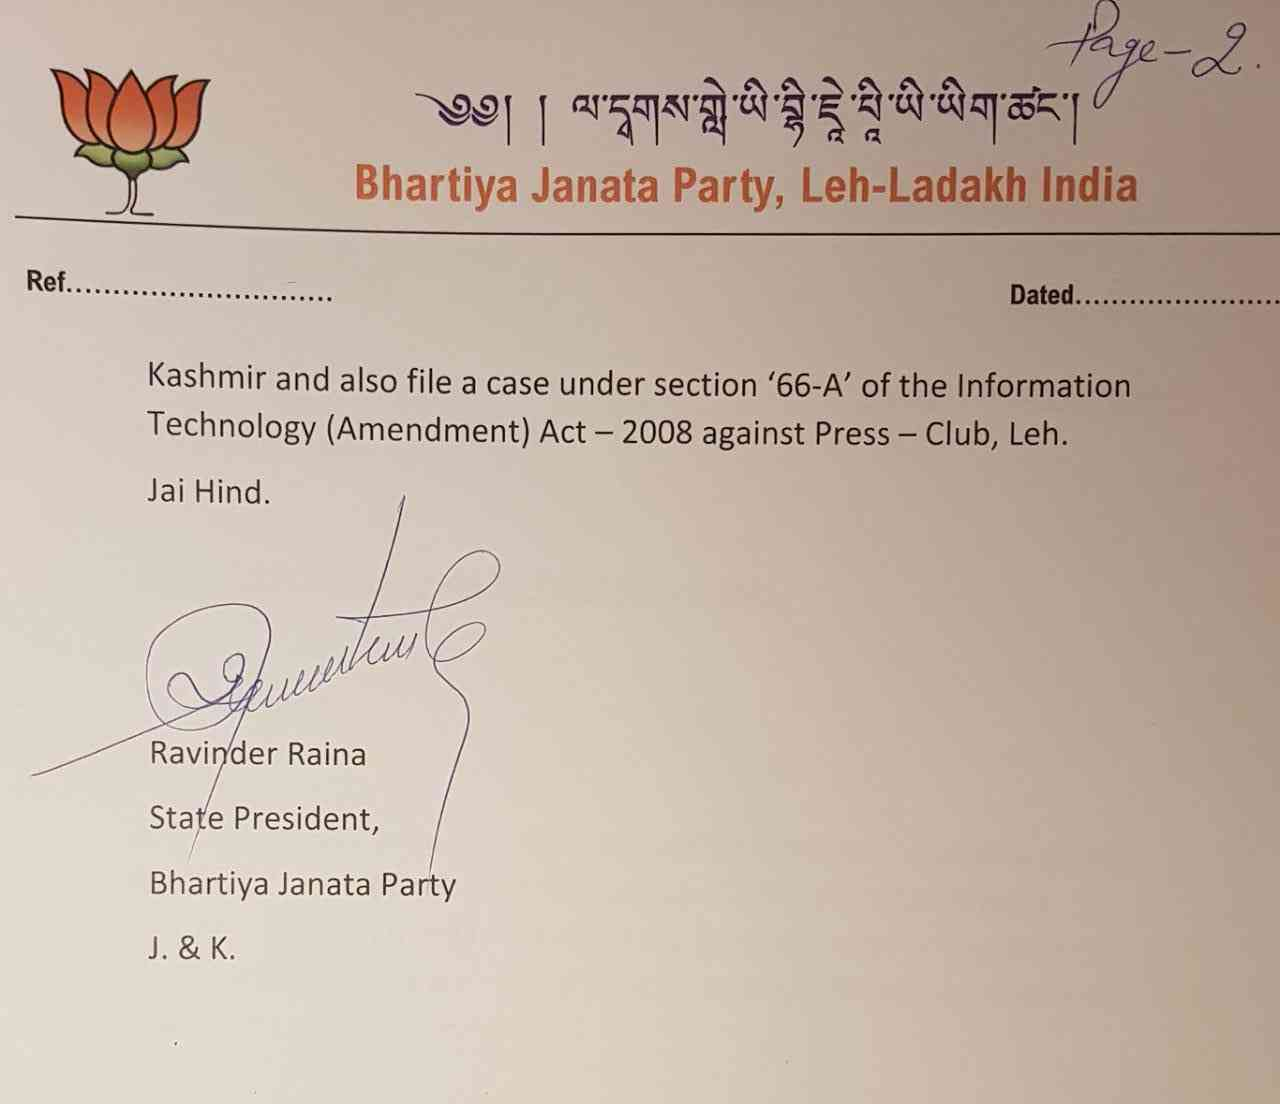 The BJP's letter to the Press Club, Leh, demanding an apology for the allegations.